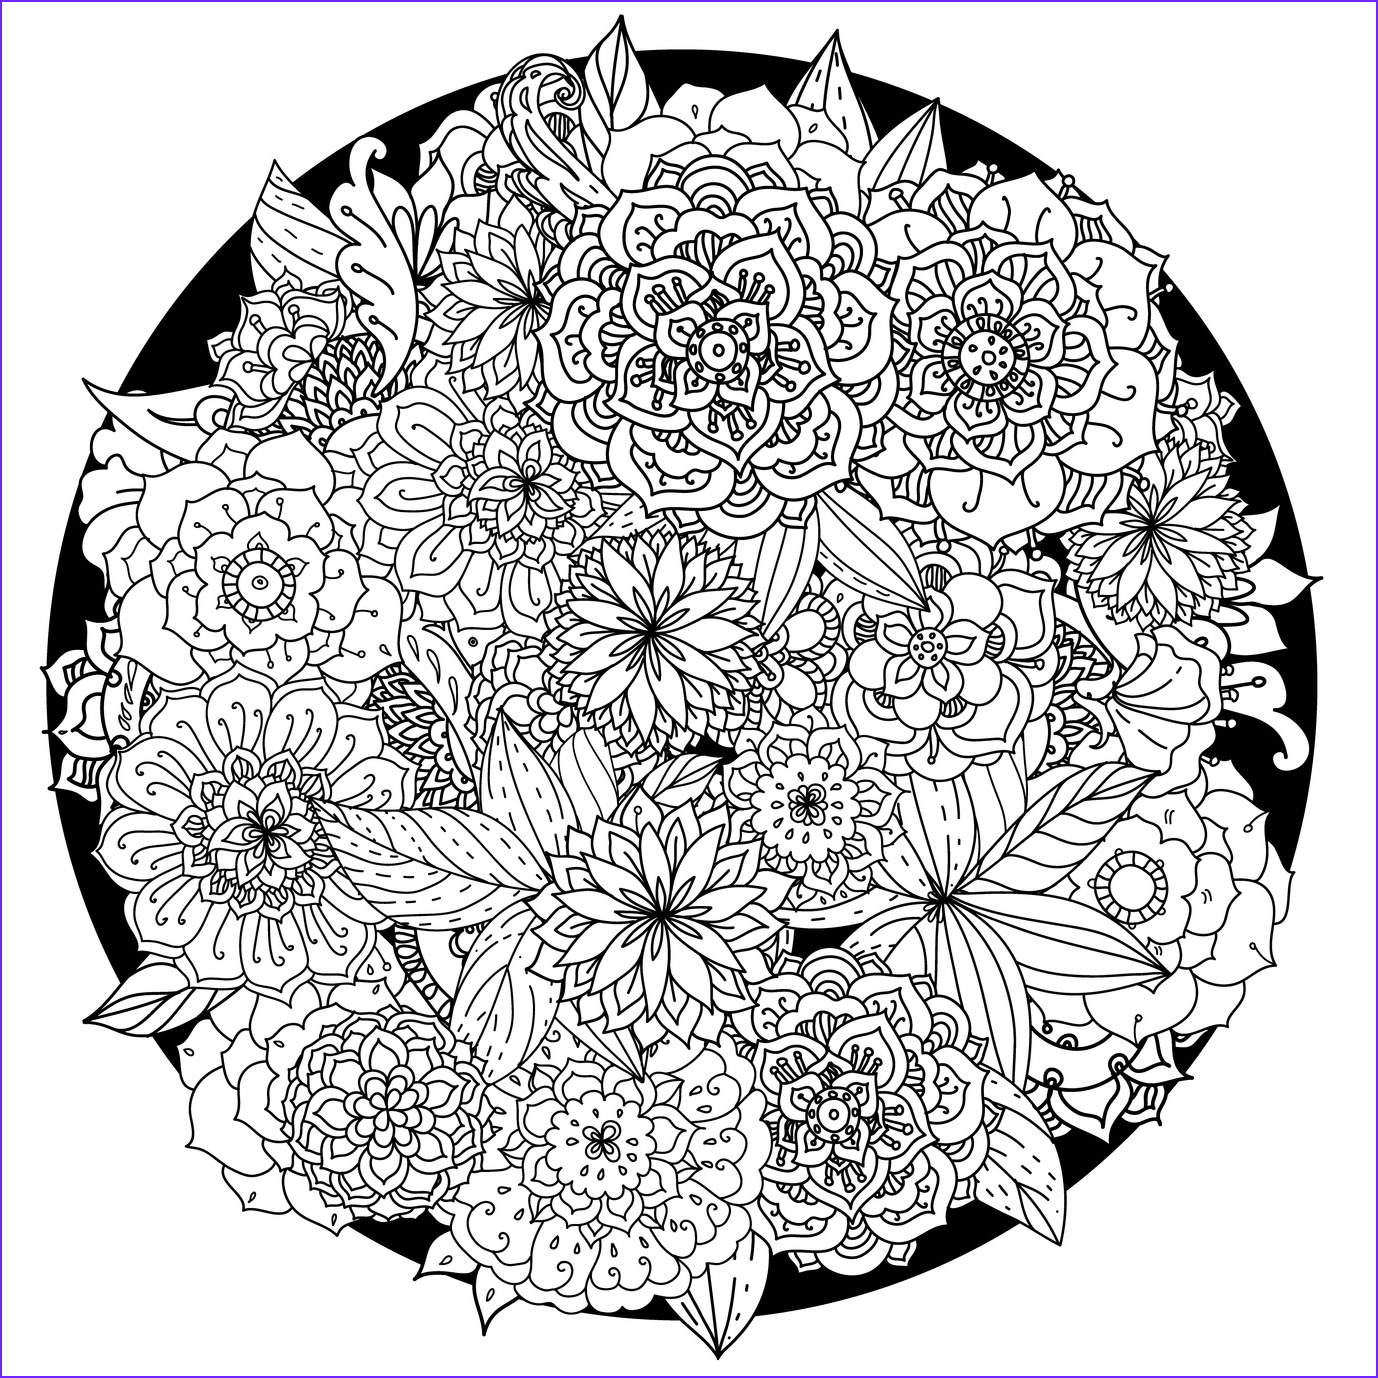 Printable Mandala Coloring Pages Luxury Gallery 63 Adult Coloring Pages to Nourish Your Mental Visual